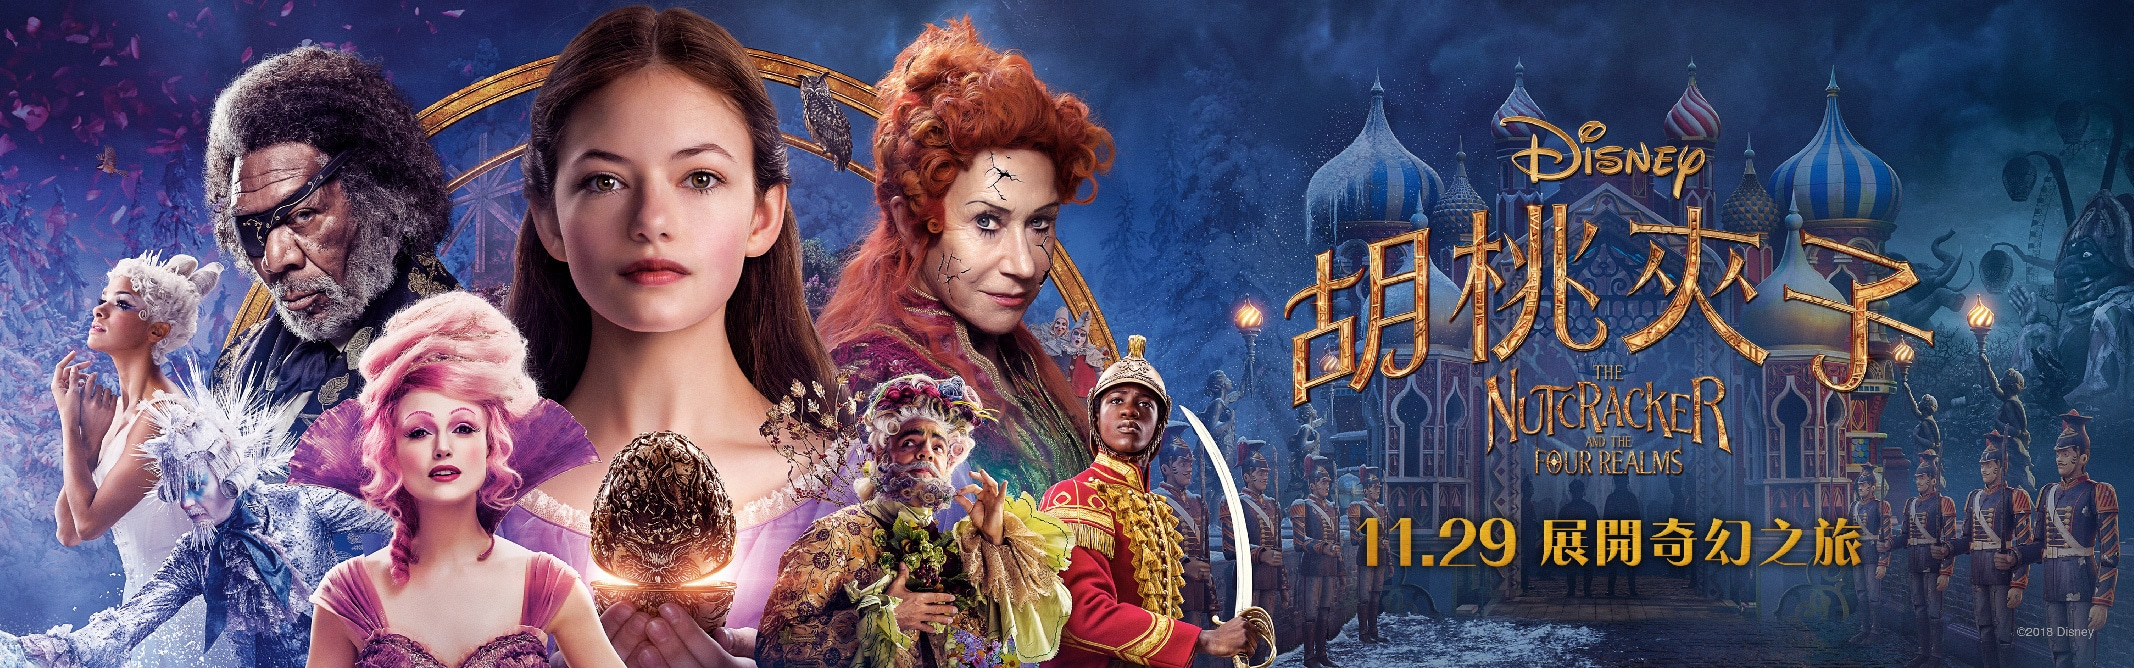 The Nutcracker and The Four Realms - Disney HK.